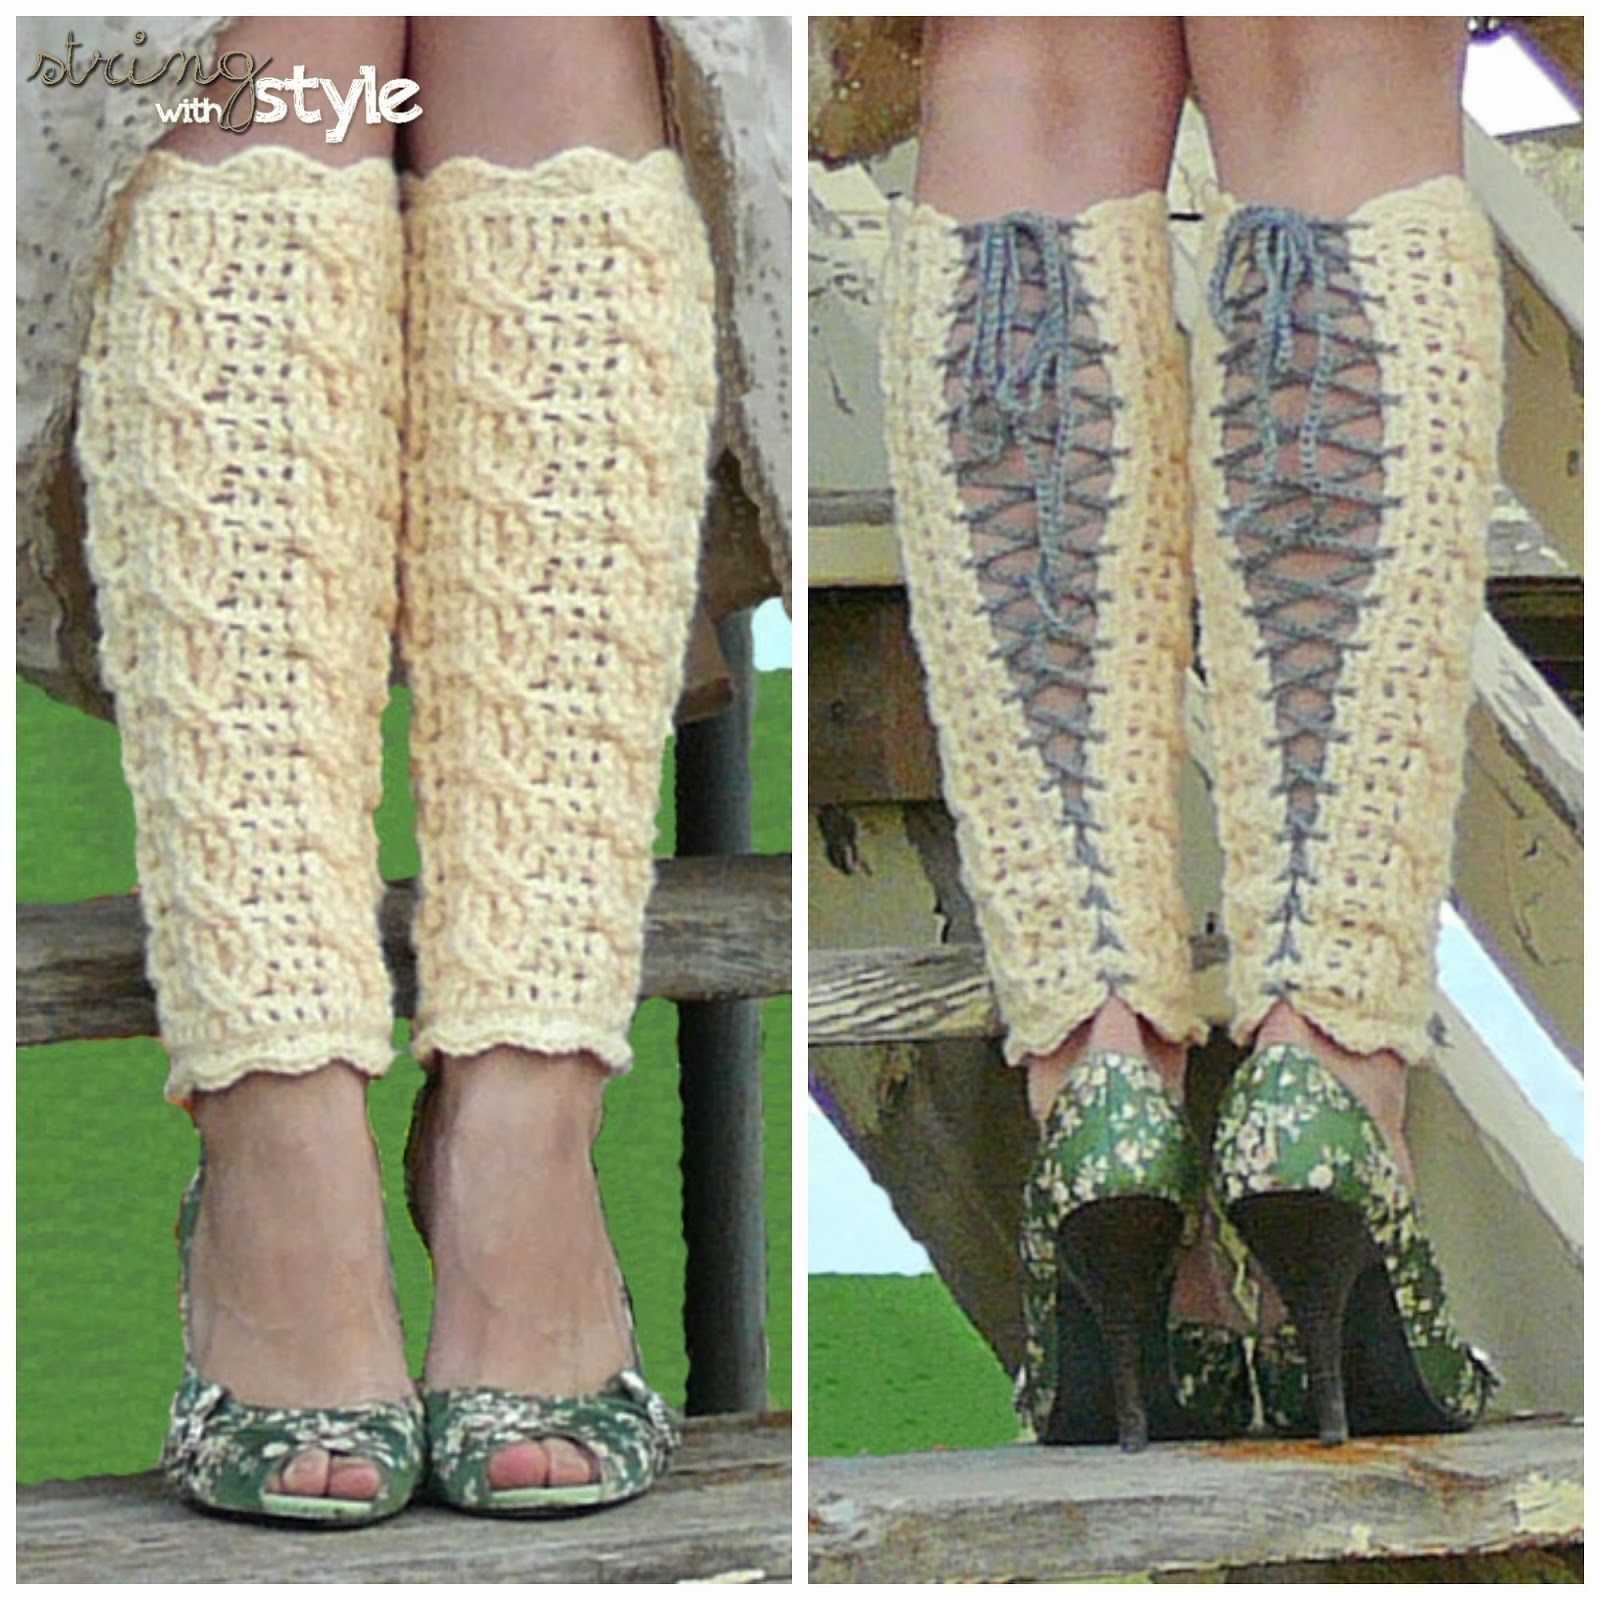 String With Style Free Crochet Patterns